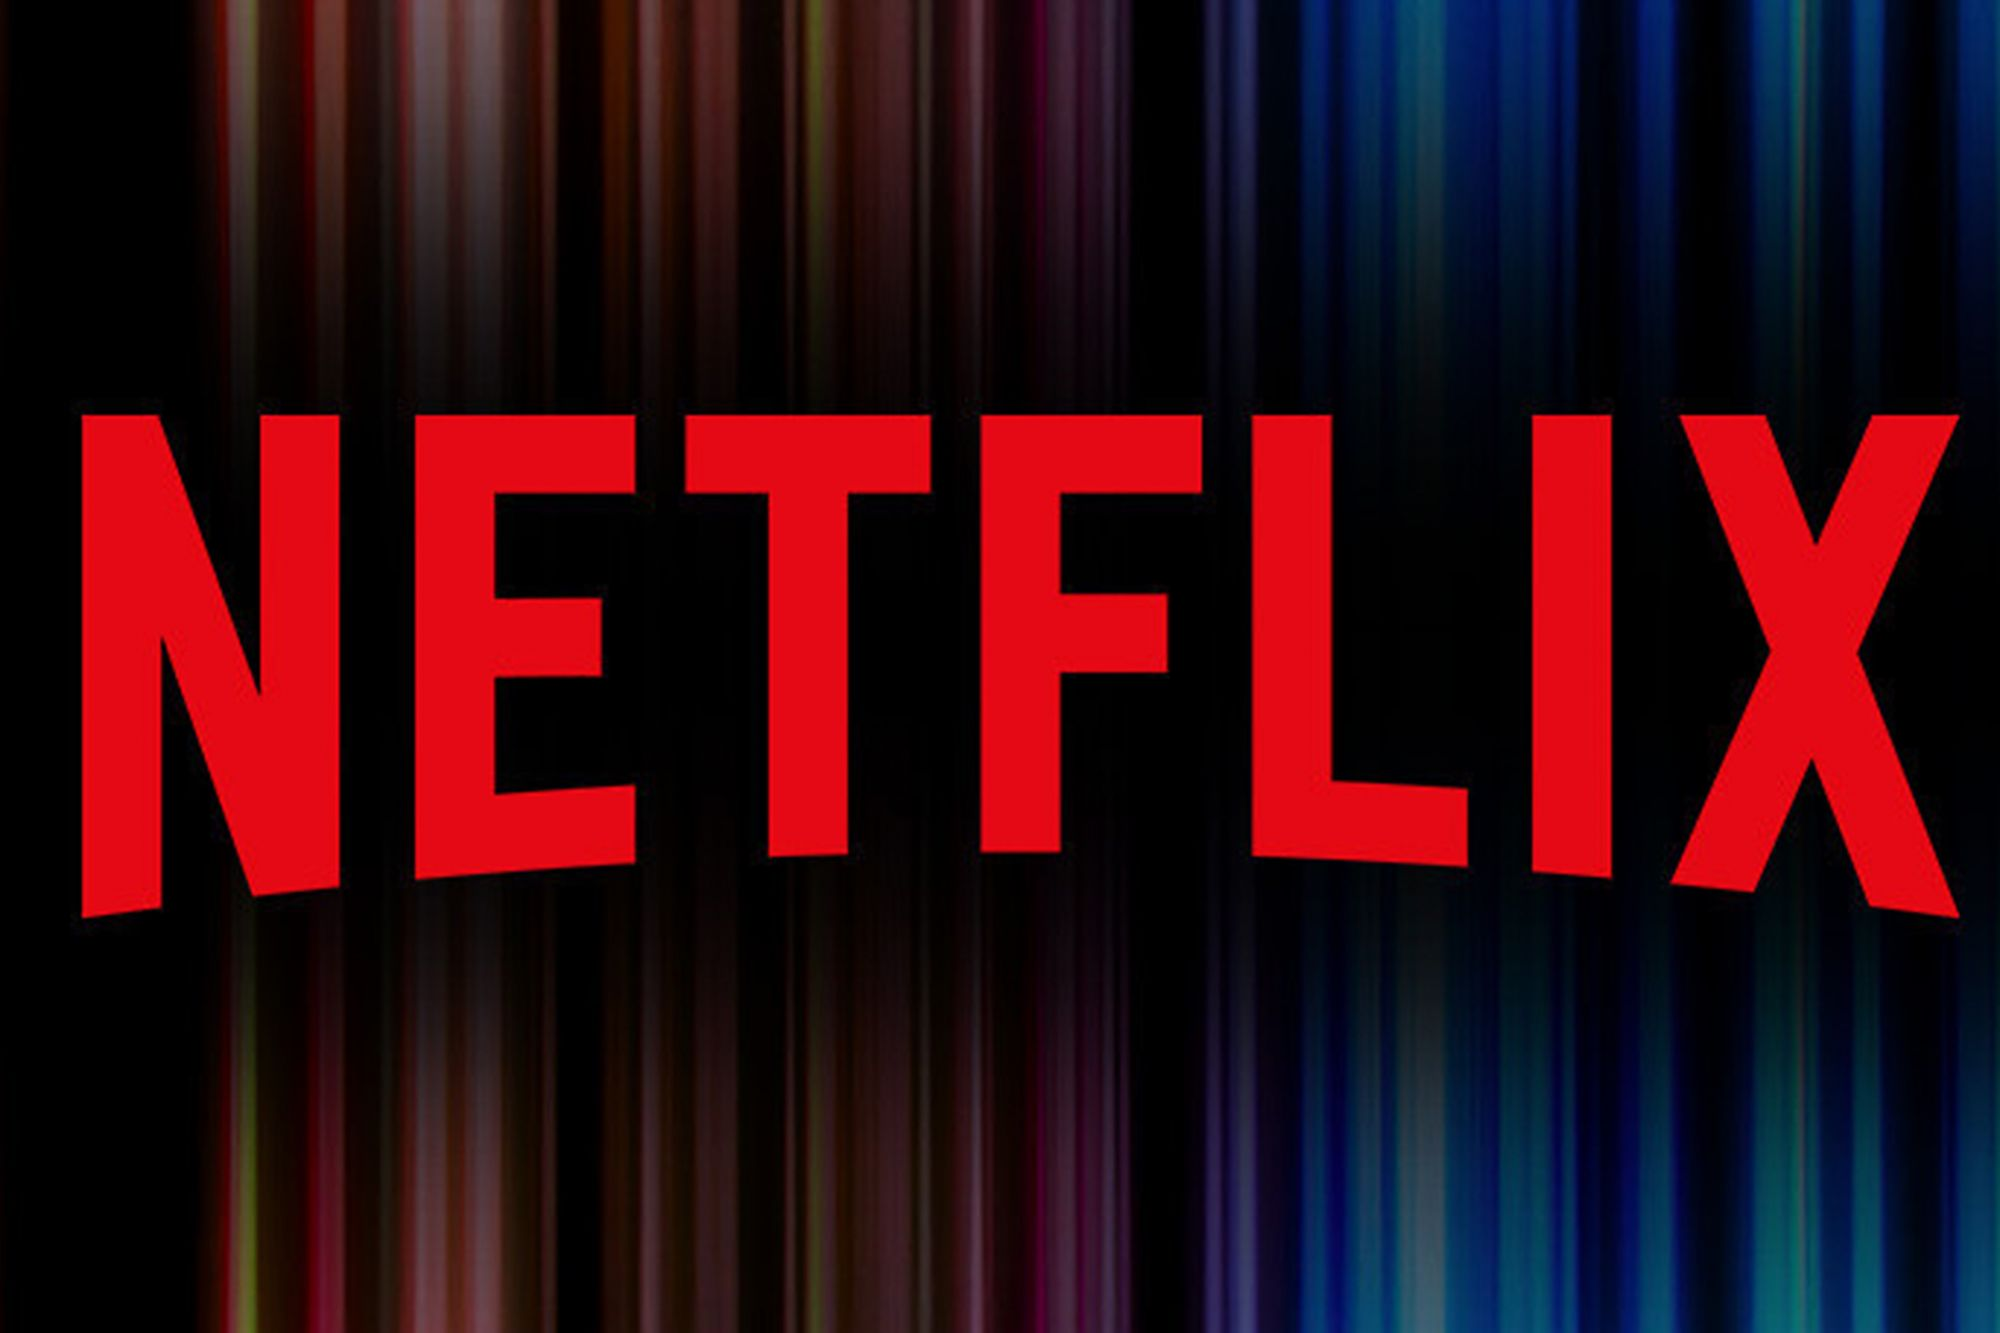 Netflix Lost 123,000 U.S. Subscribers After Price Hike